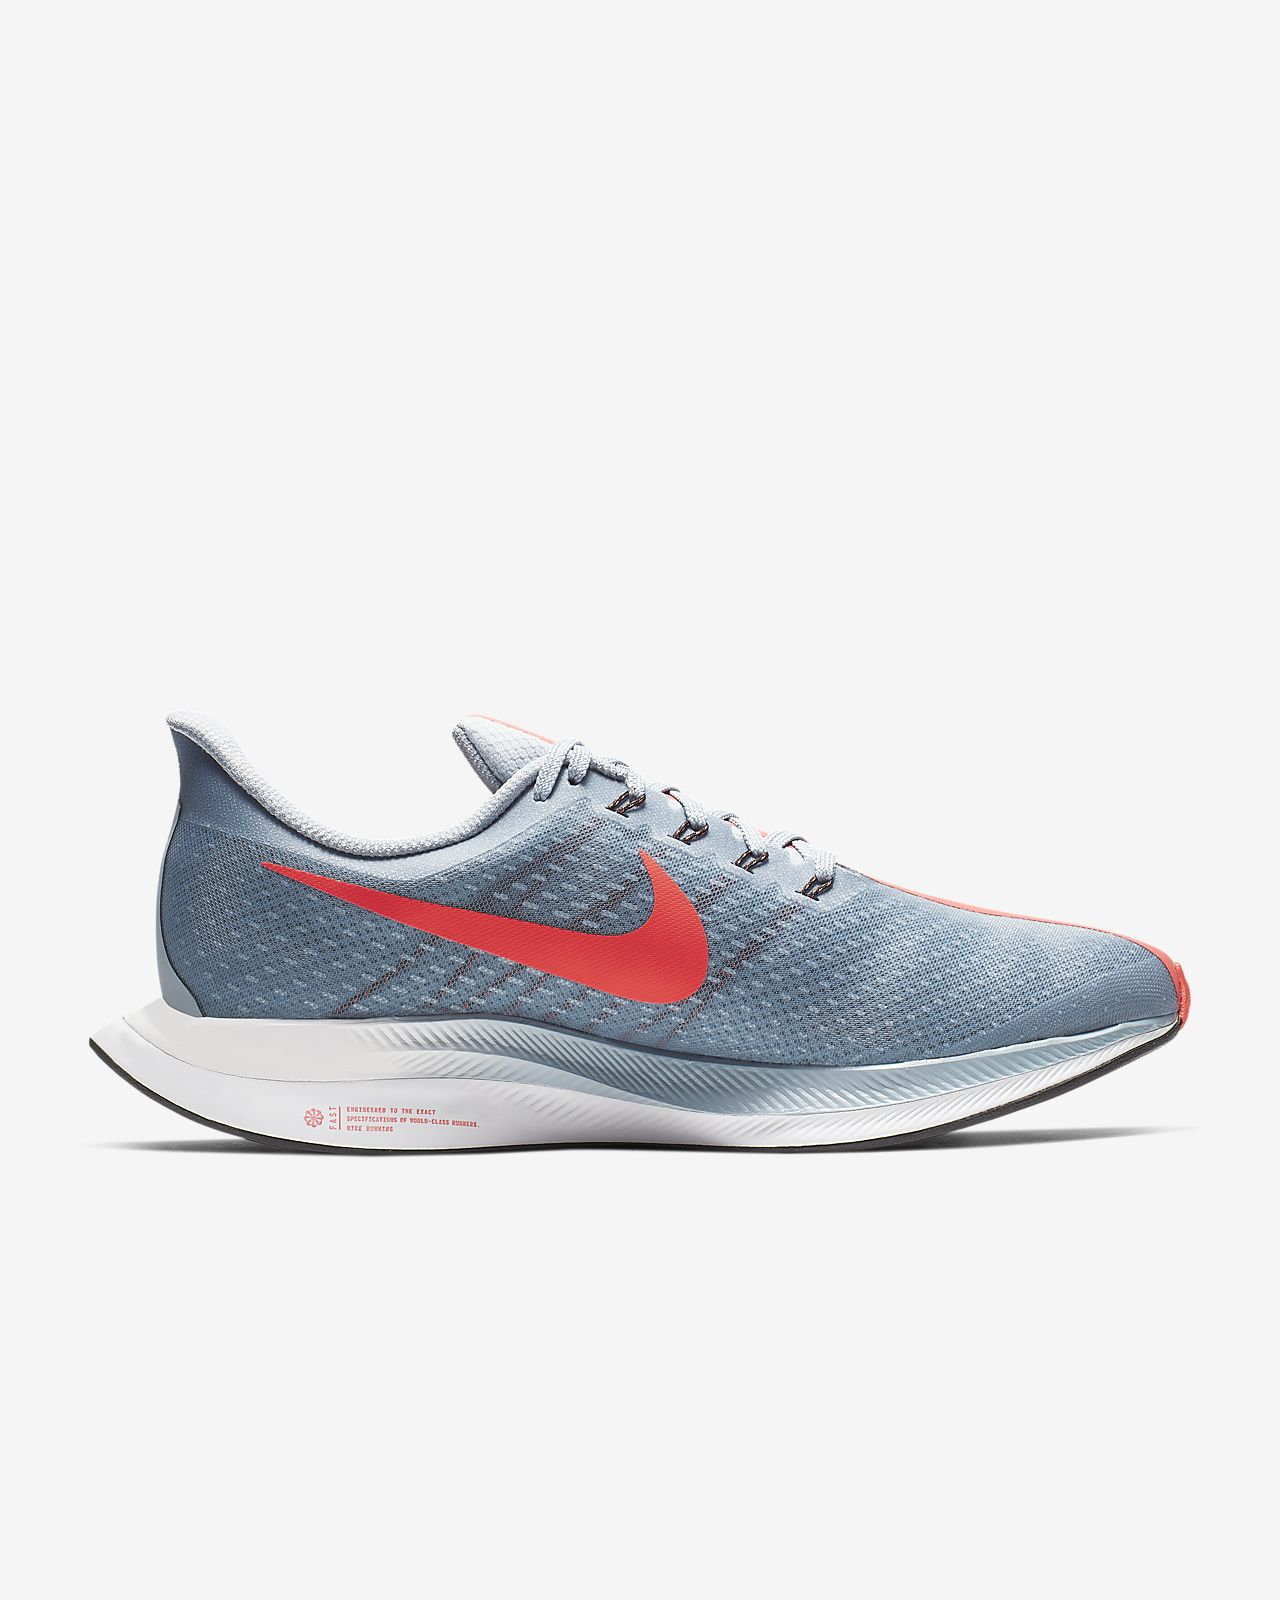 f8781d0bdde7 Nike Zoom Pegasus Turbo Men s Running Shoe. Nike.com AU